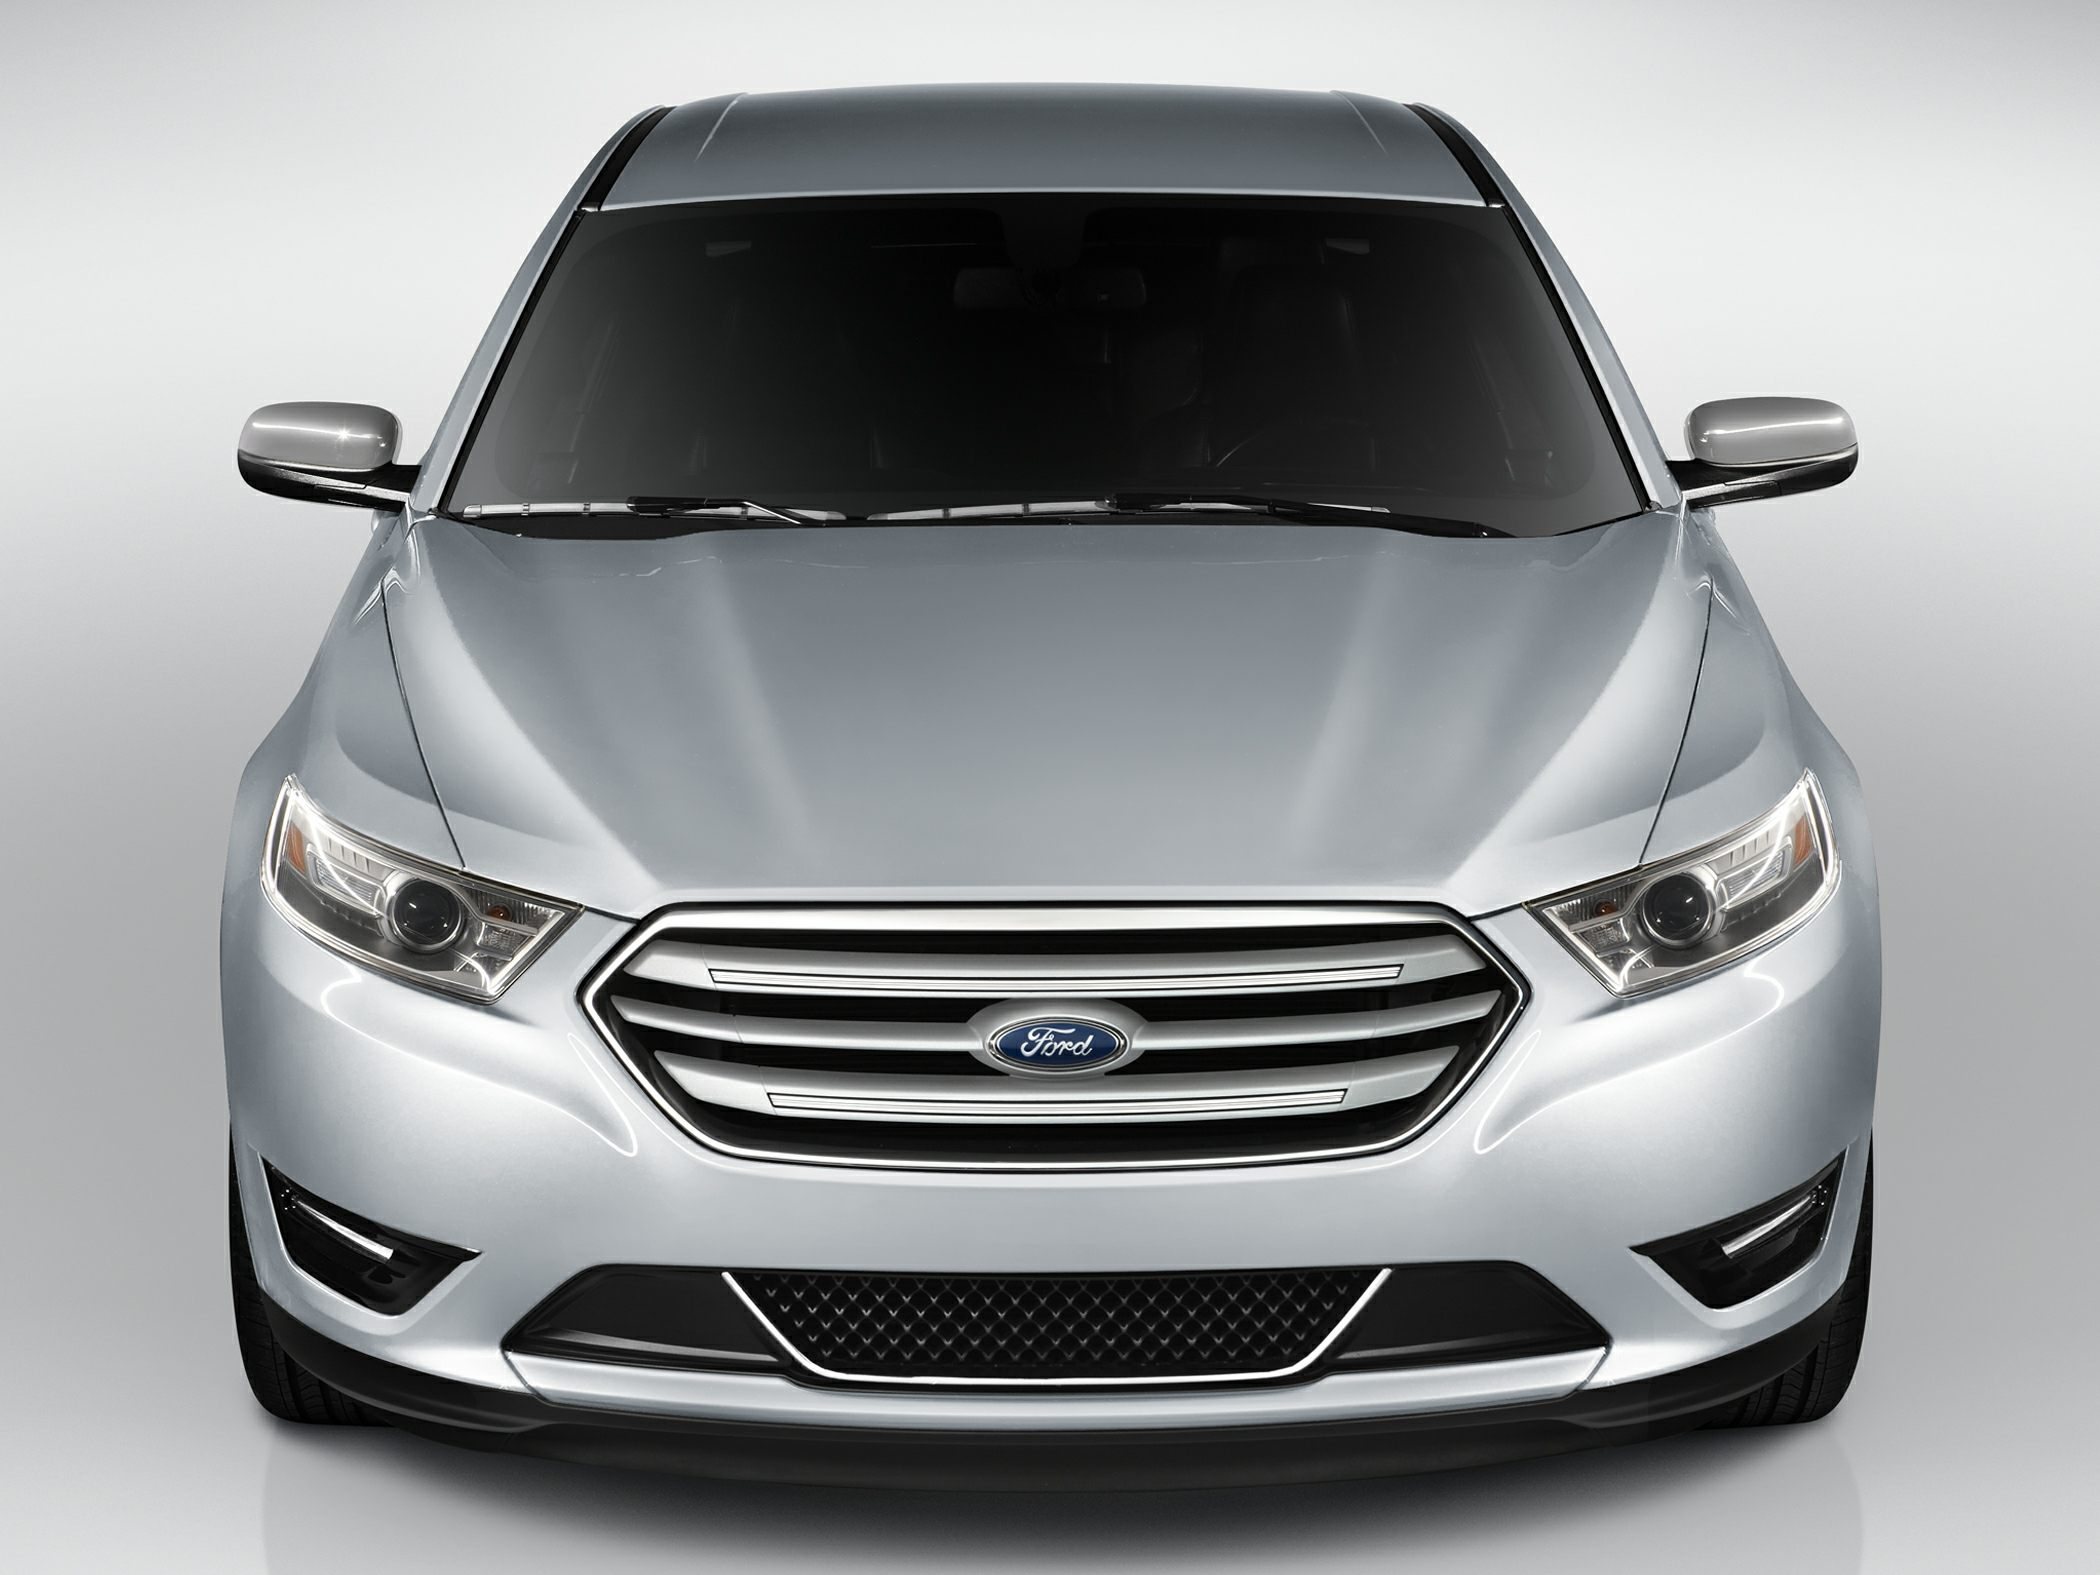 2016 Ford Taurus Styles  Features Highlights